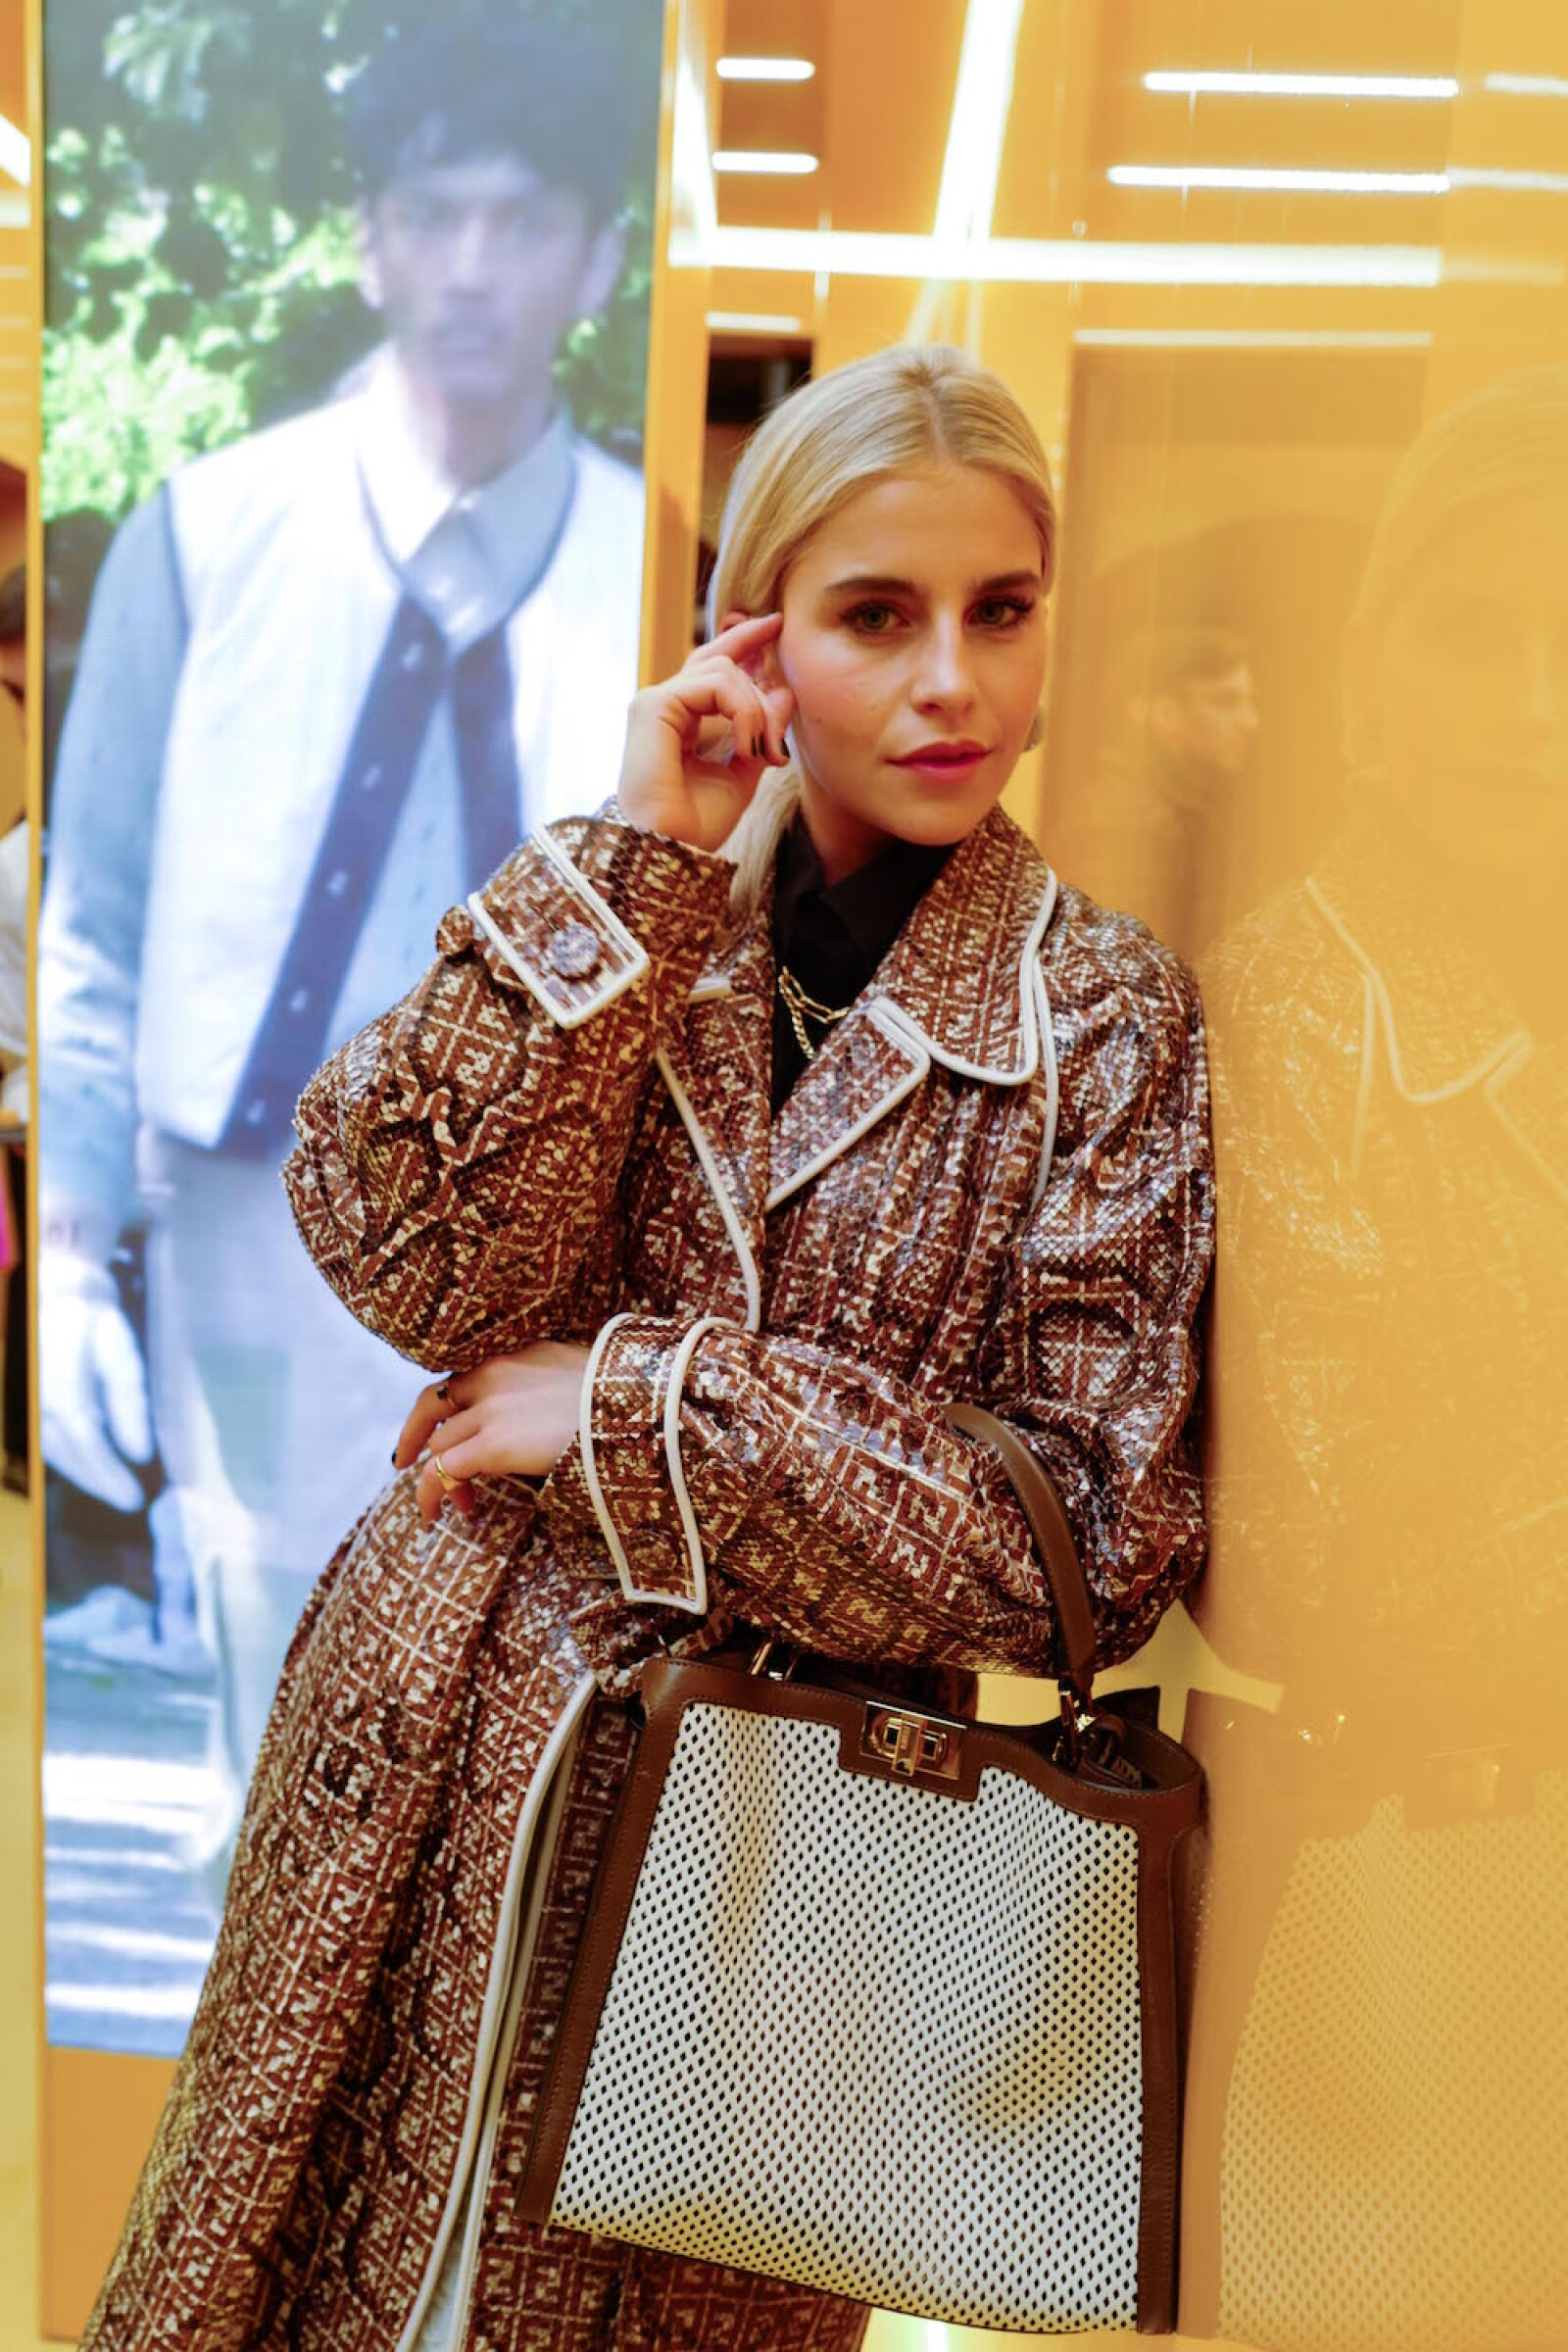 008_Caro Daur_@FENDI Solar Dream Milan Event_L1080465.JPG